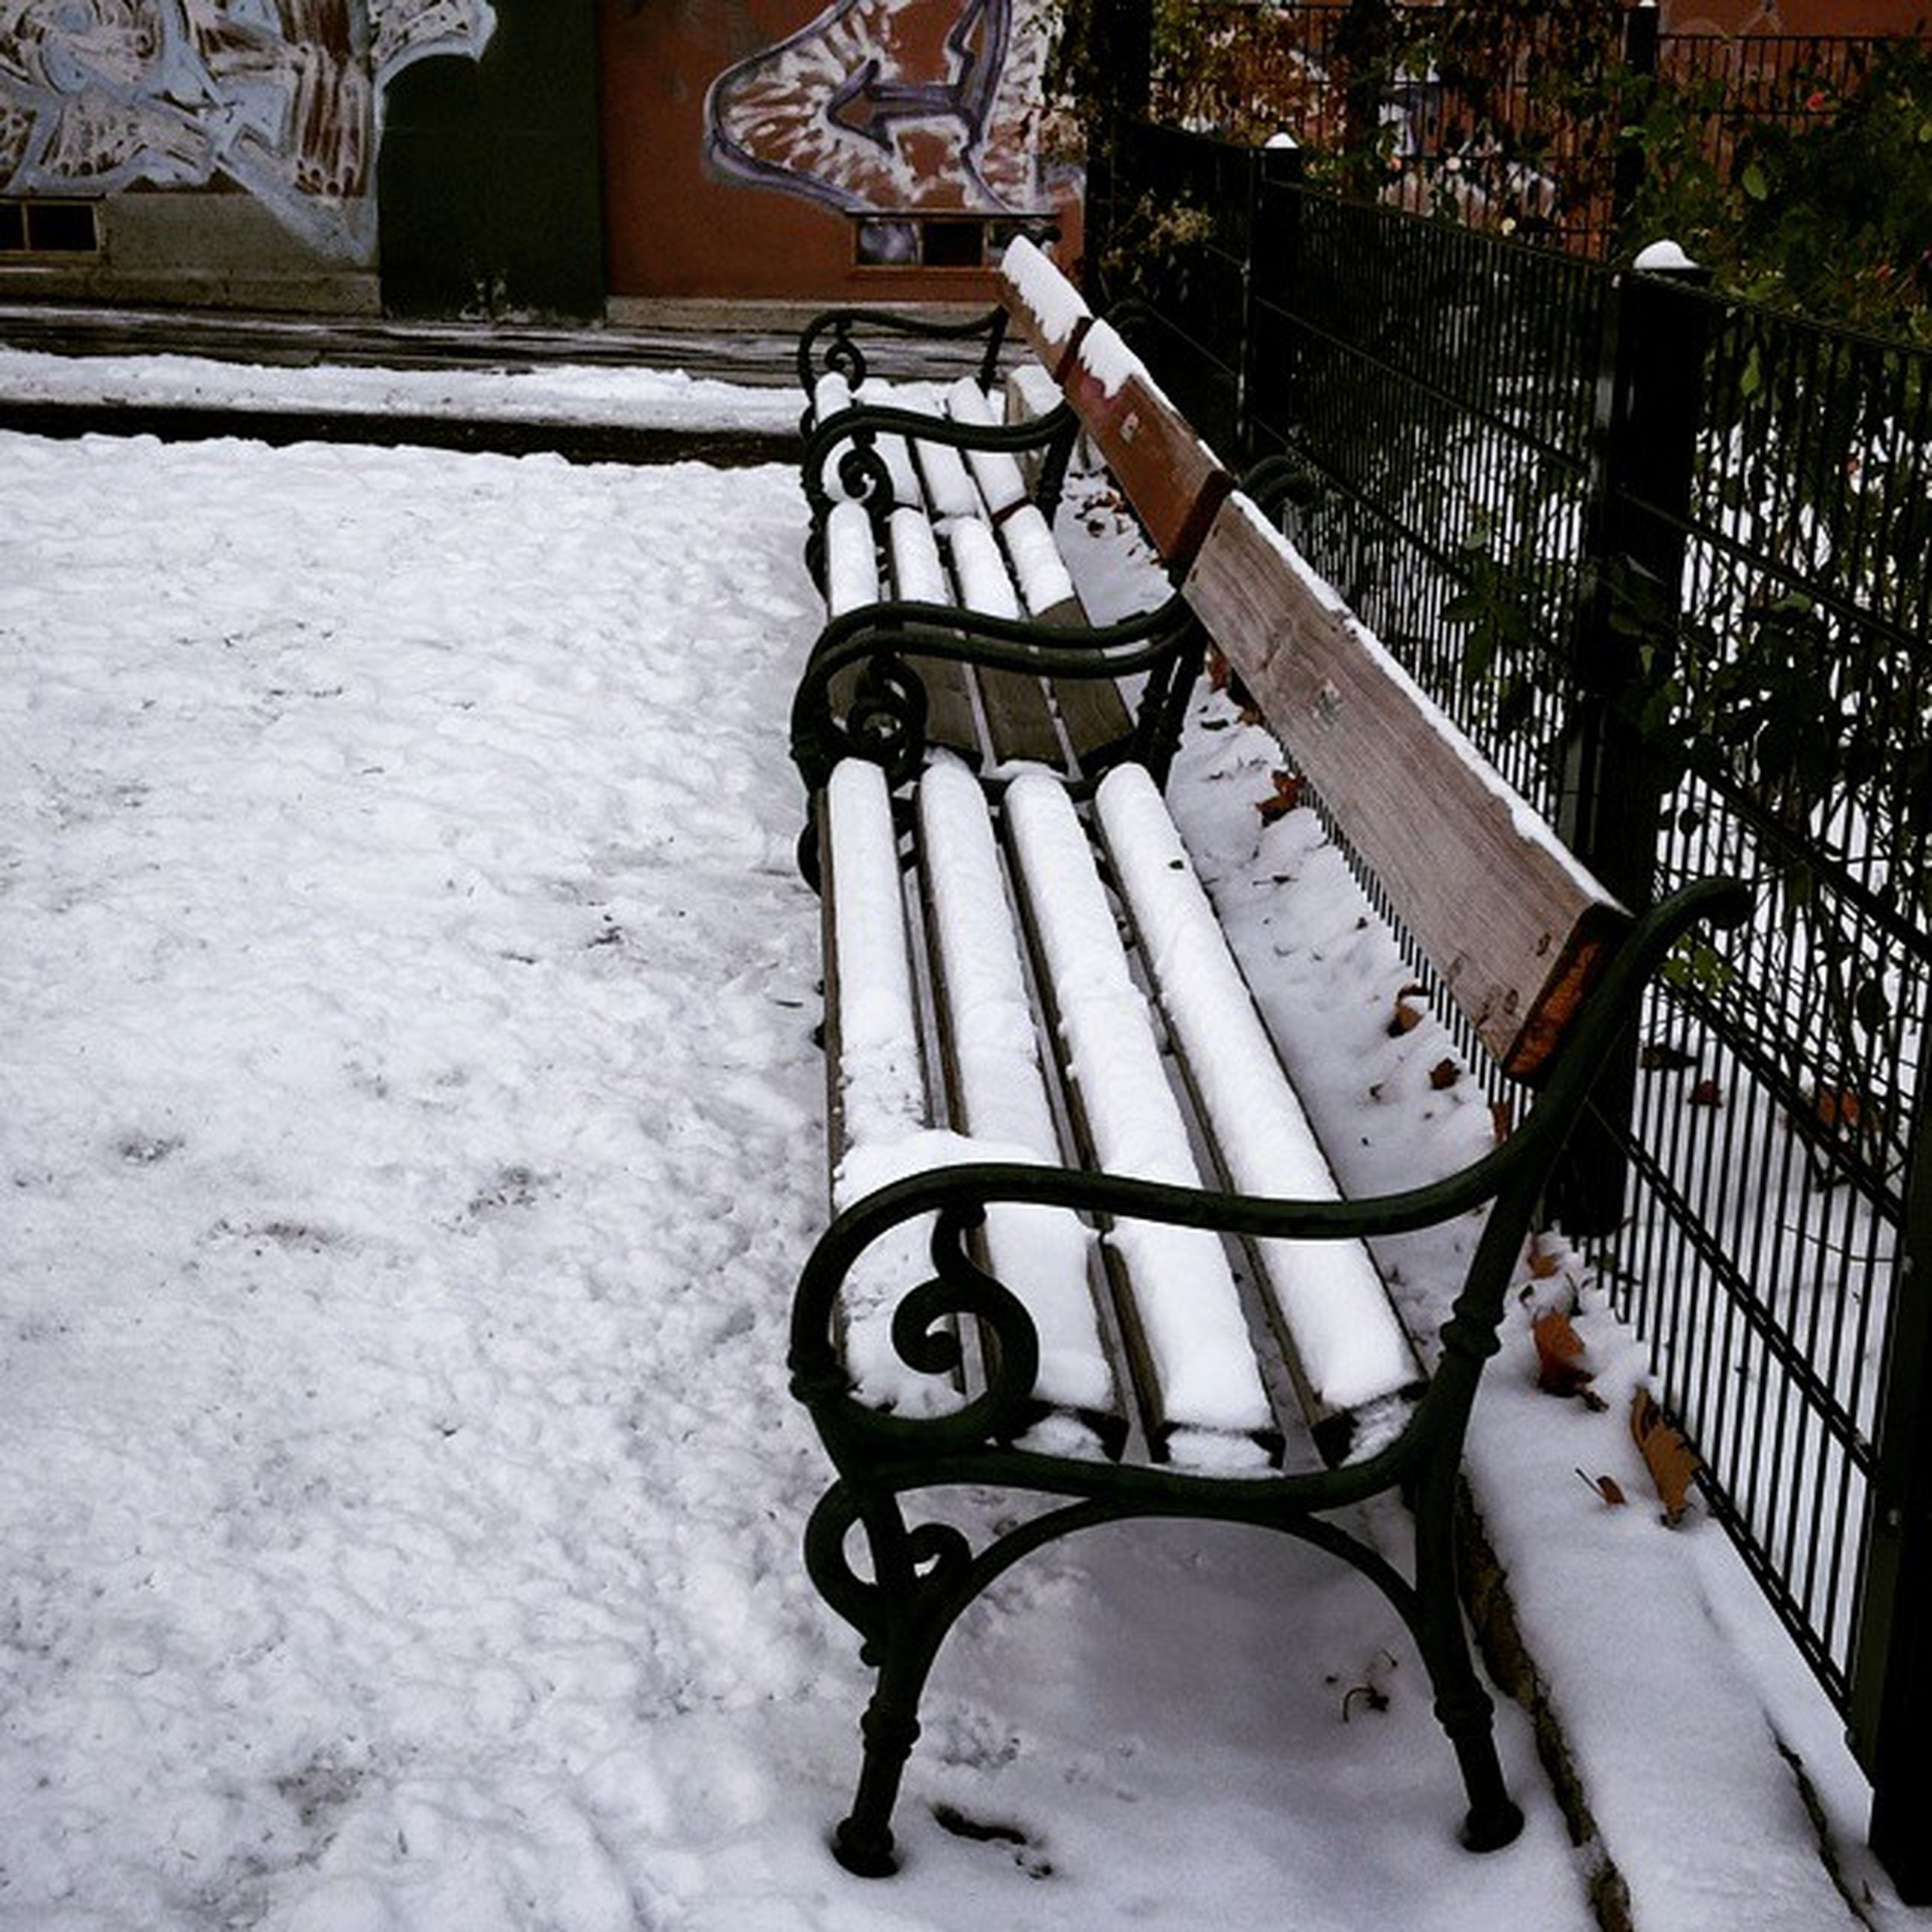 snow, winter, cold temperature, season, built structure, building exterior, architecture, weather, railing, covering, metal, day, fence, house, outdoors, white color, bare tree, absence, bench, no people